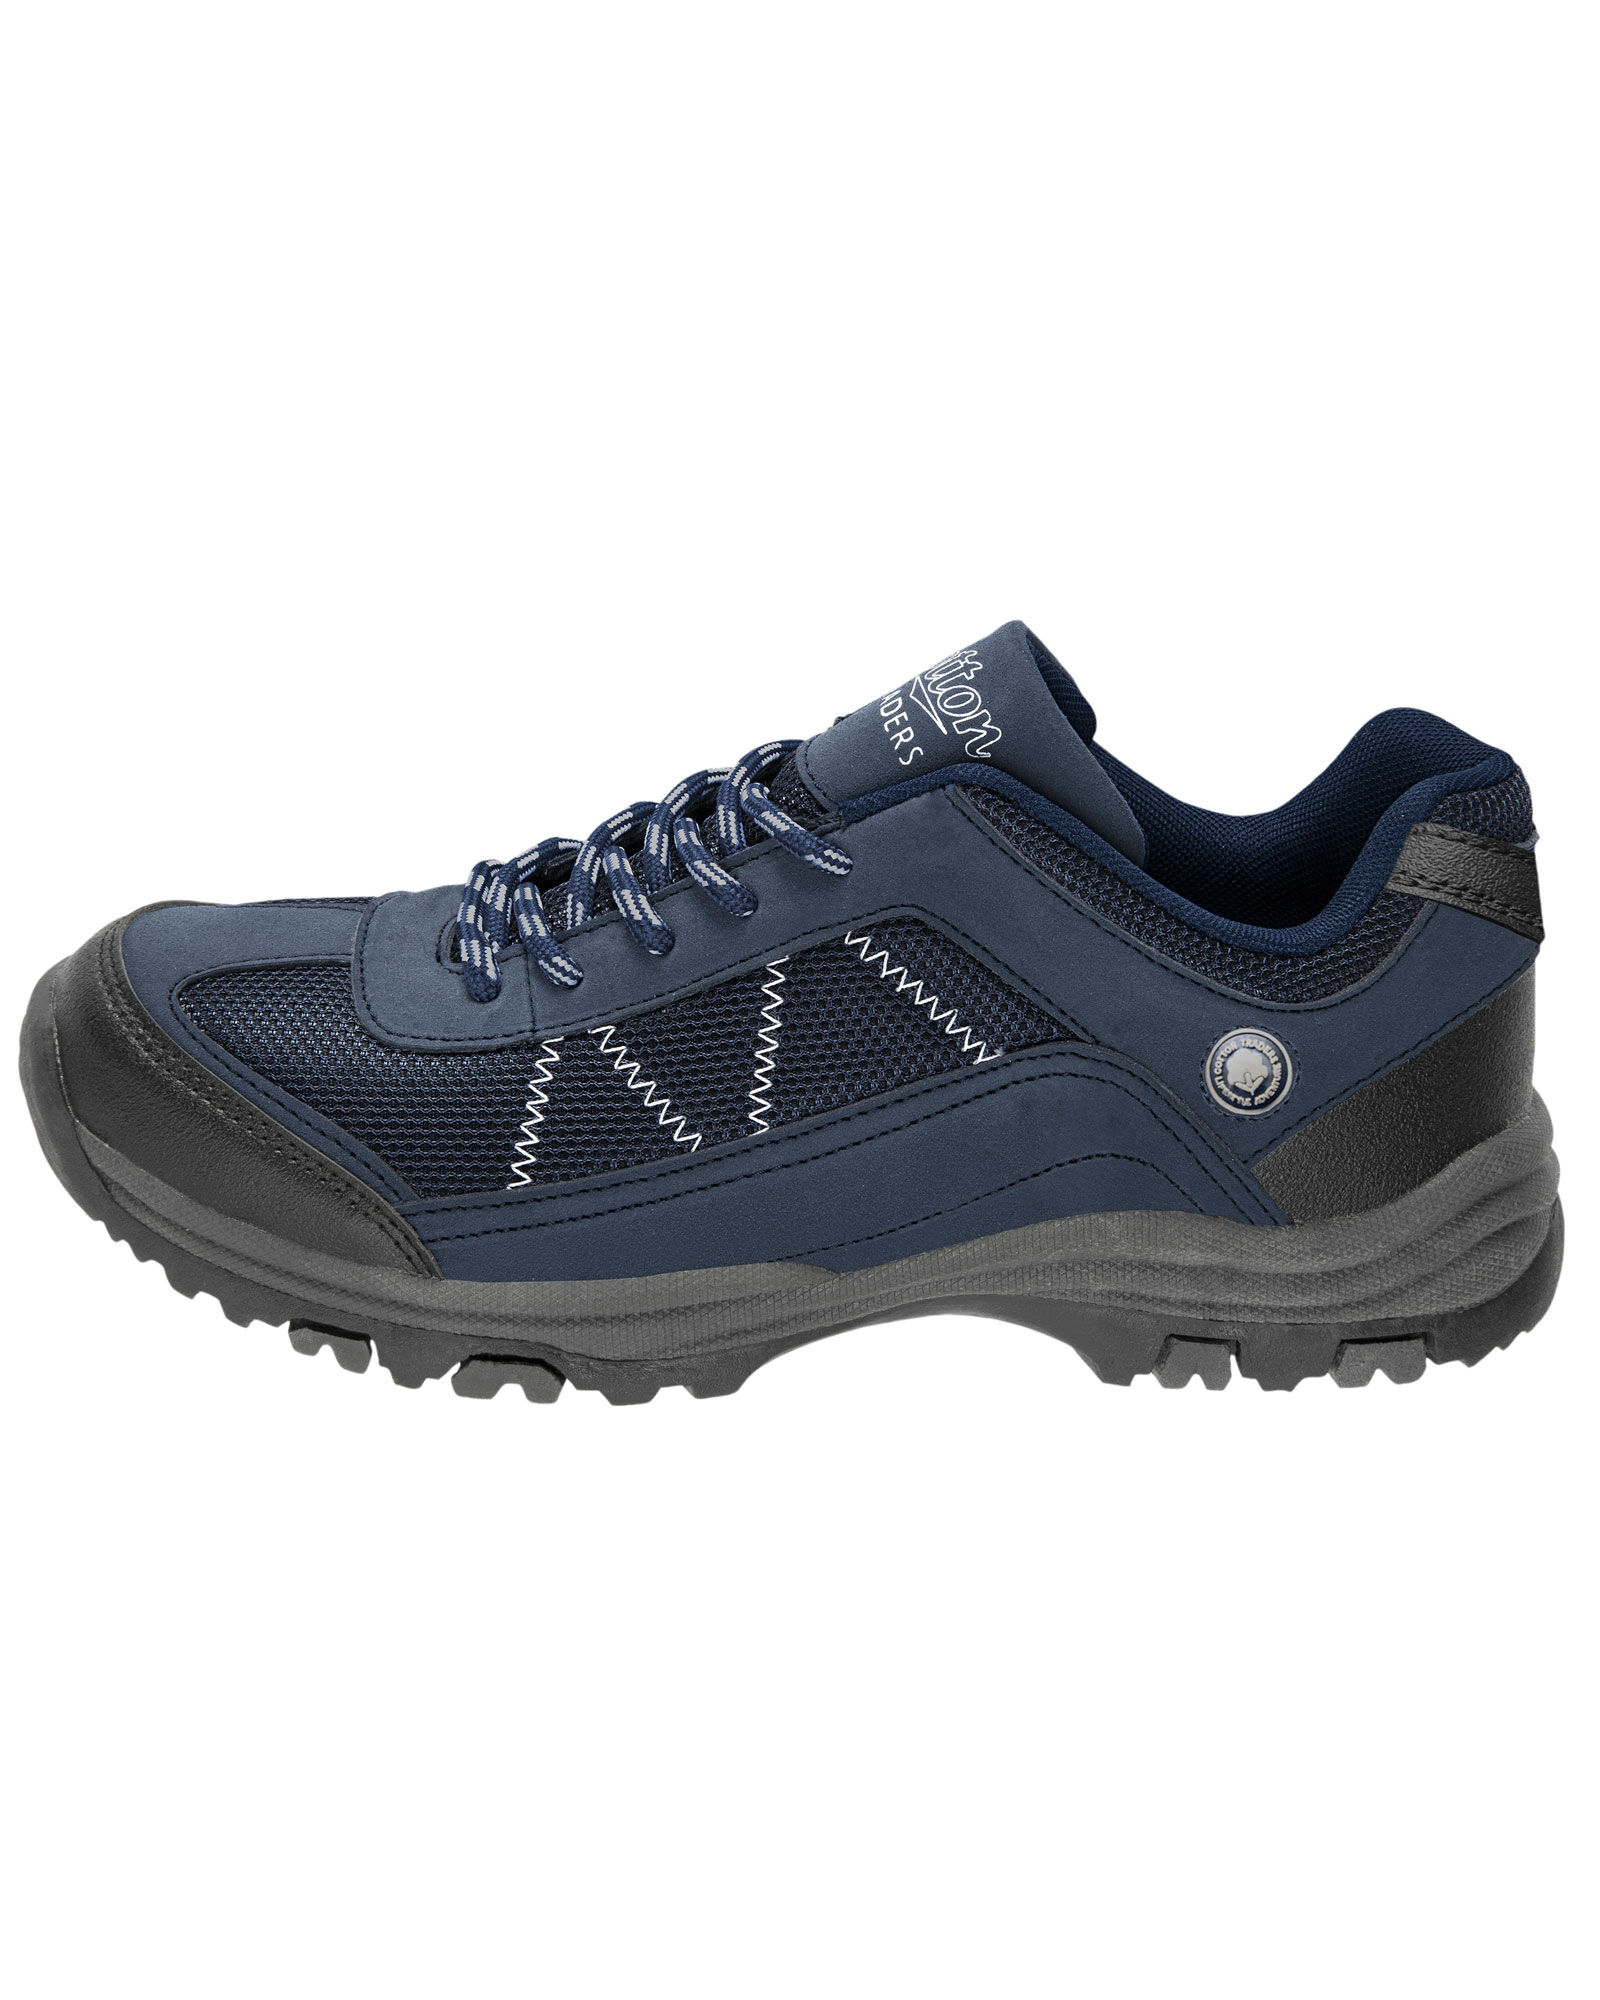 Lightweight Walking Shoes at Cotton Traders